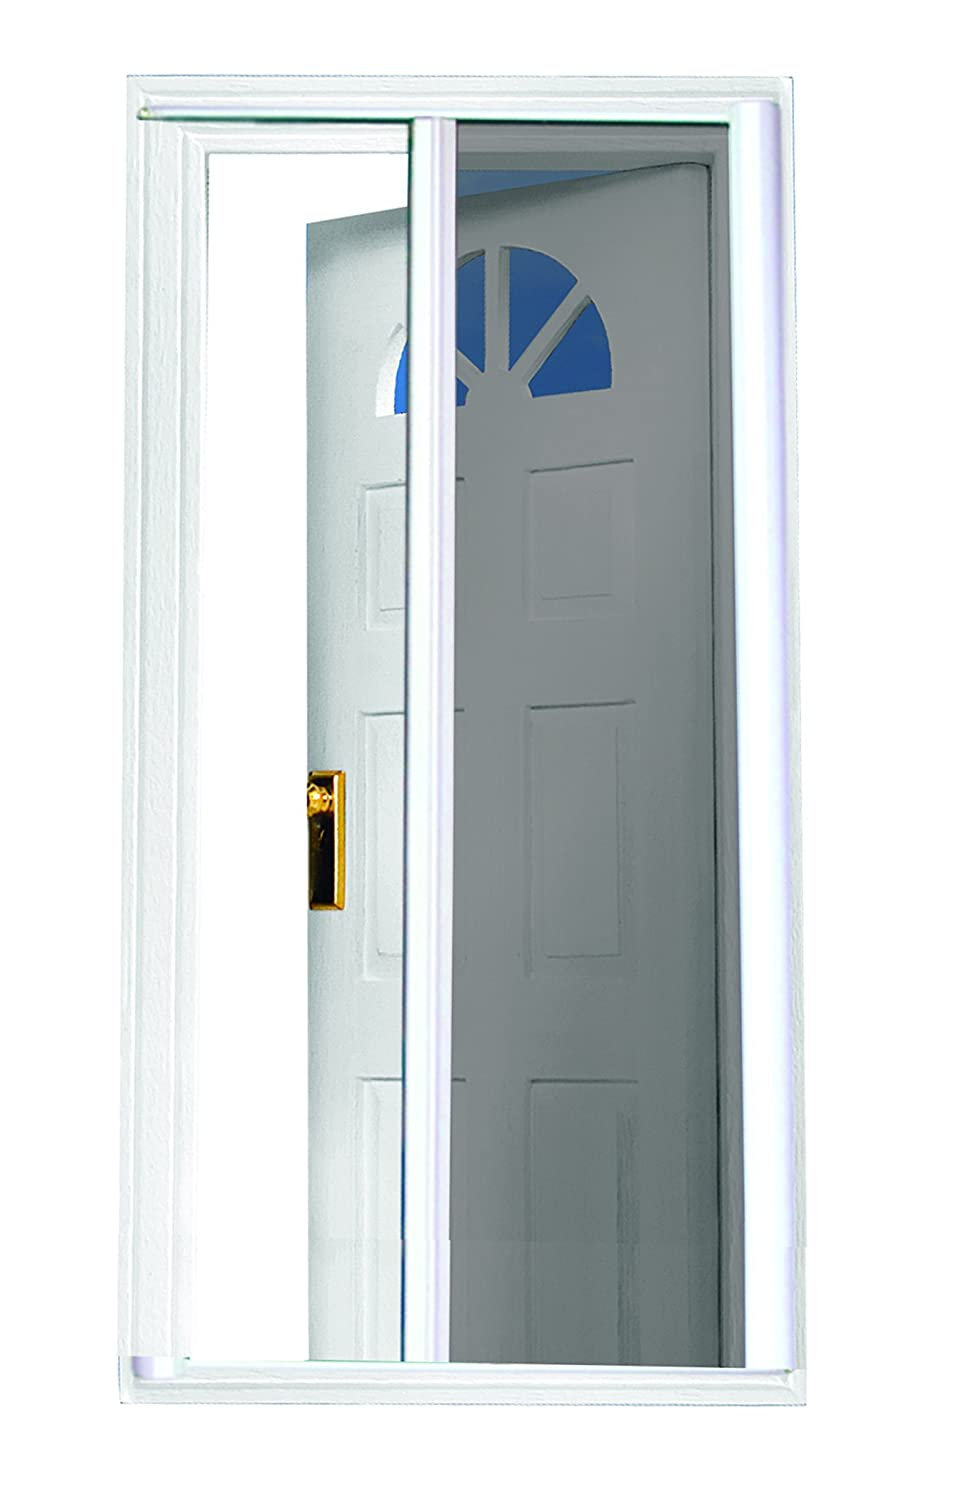 vein door double doors metalex screen gallery crown security copper